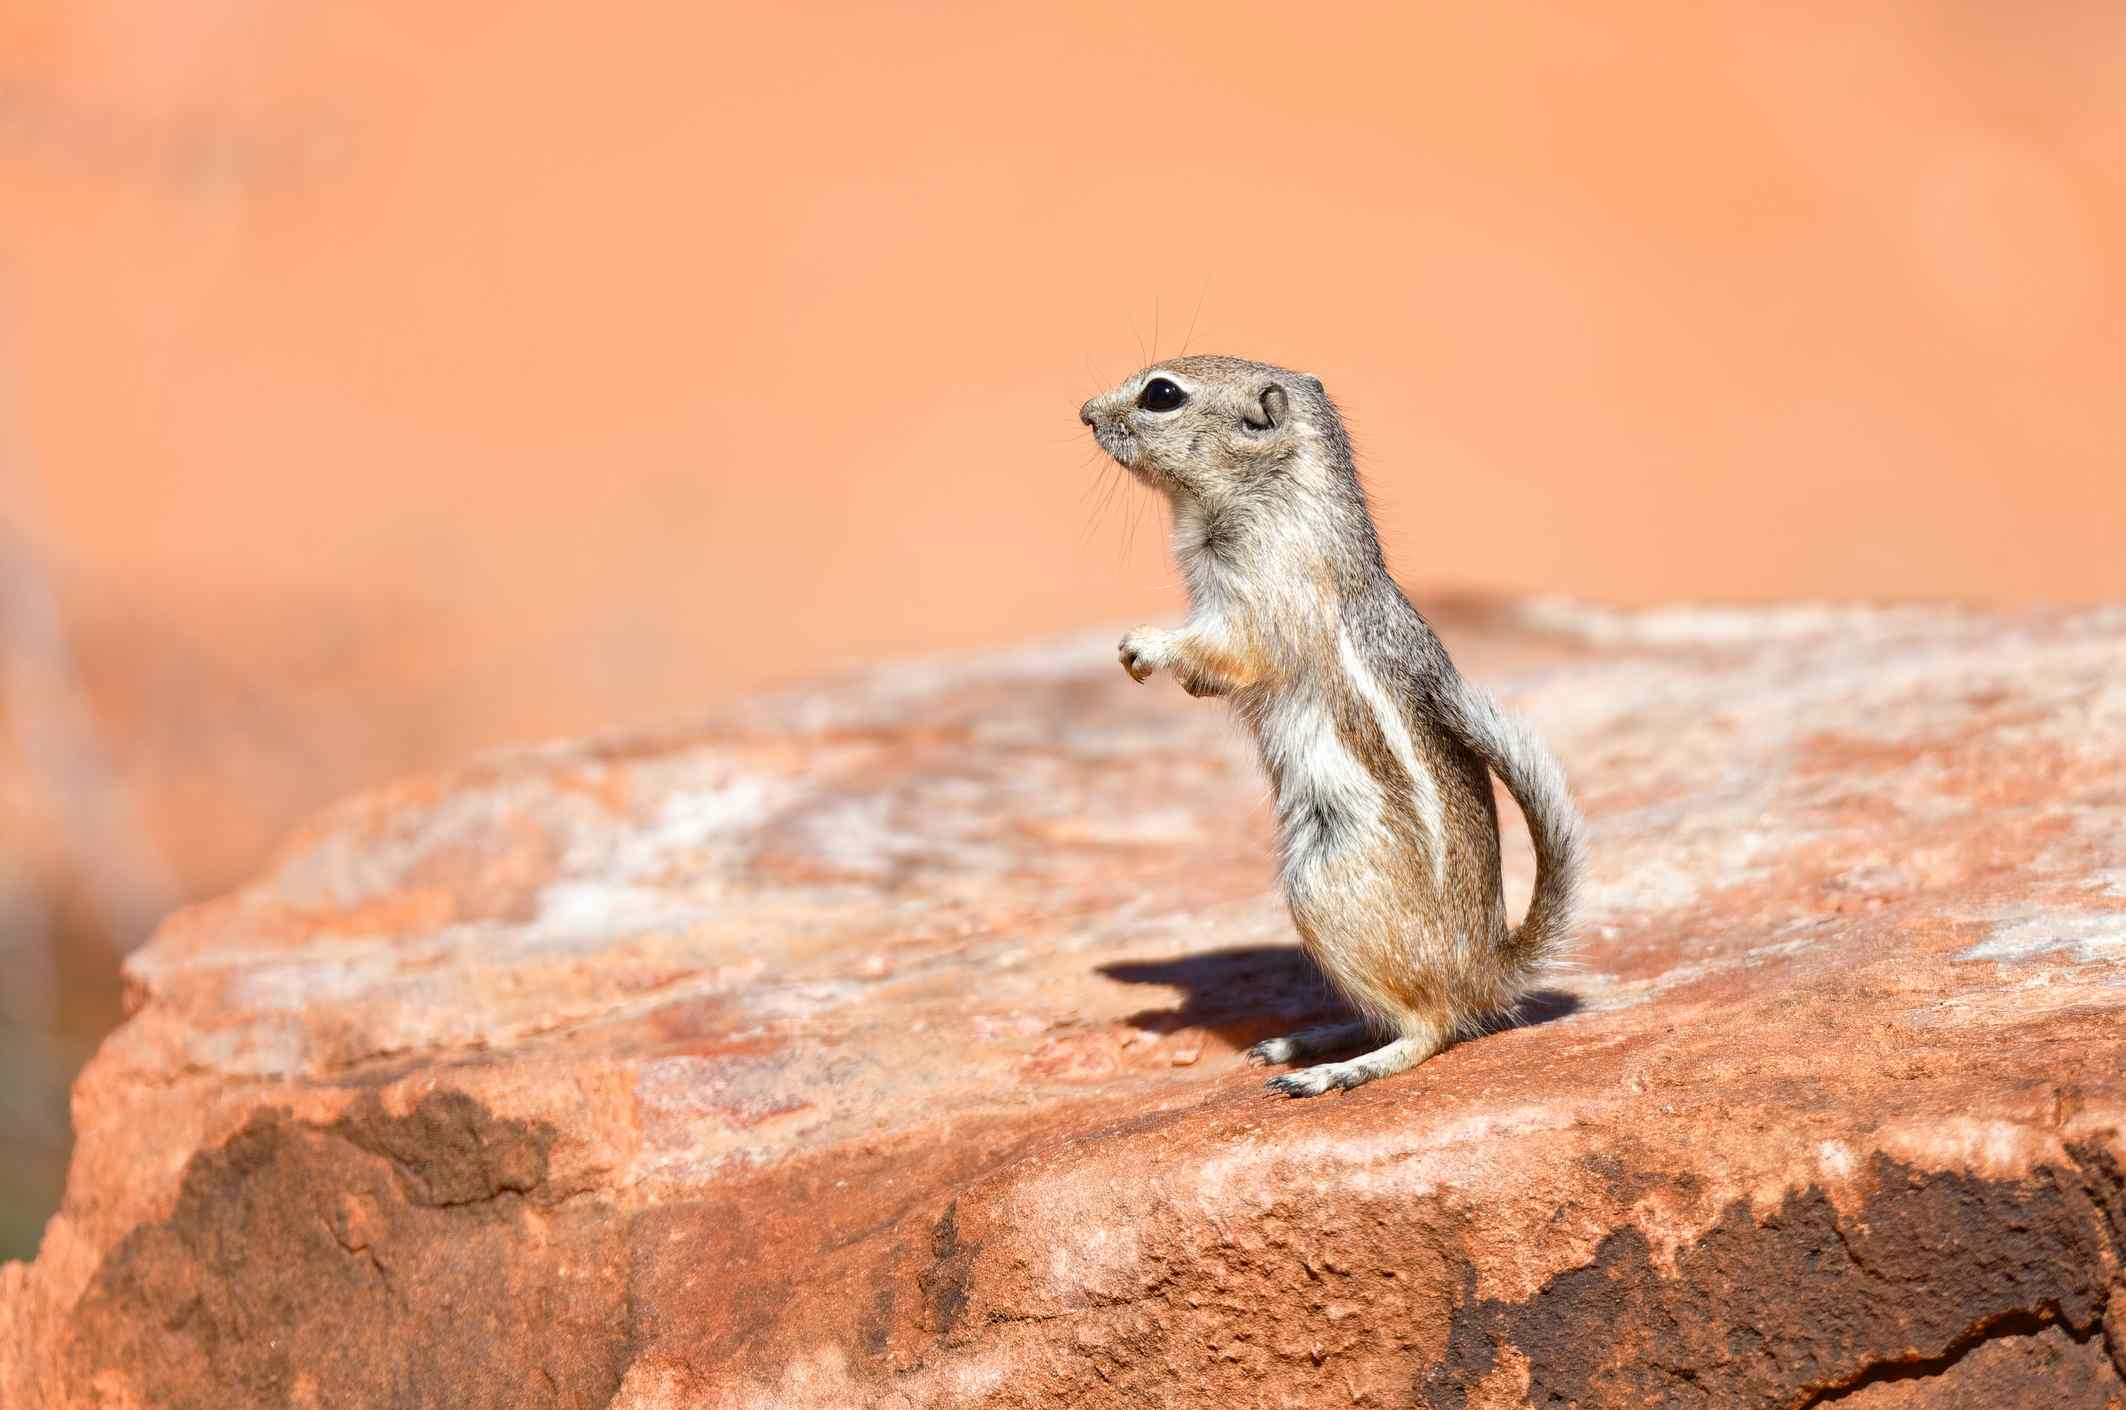 White-tailed antelope ground squirrel on a rock